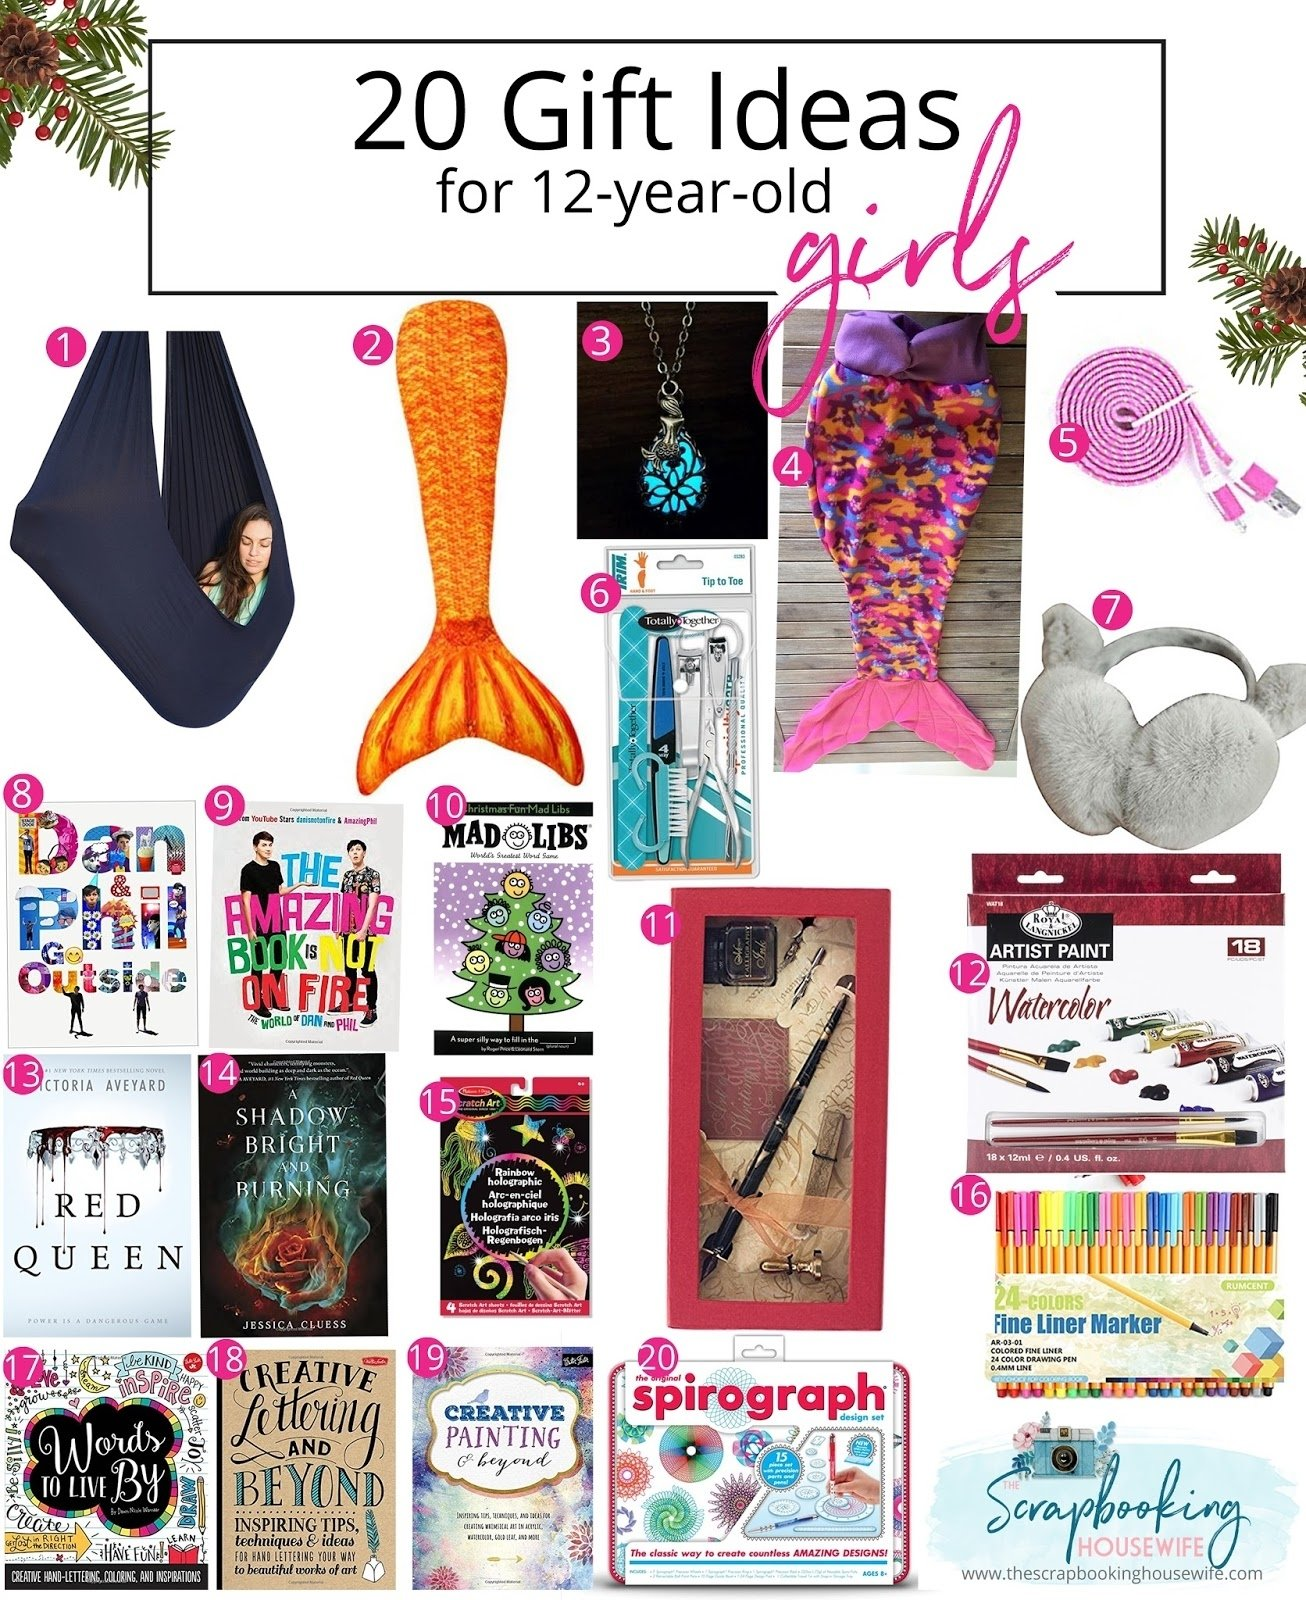 10 Cute Gift Ideas 11 Year Old Girl ellabella designs 20 gift ideas for 12 year old tween girls 5 2021